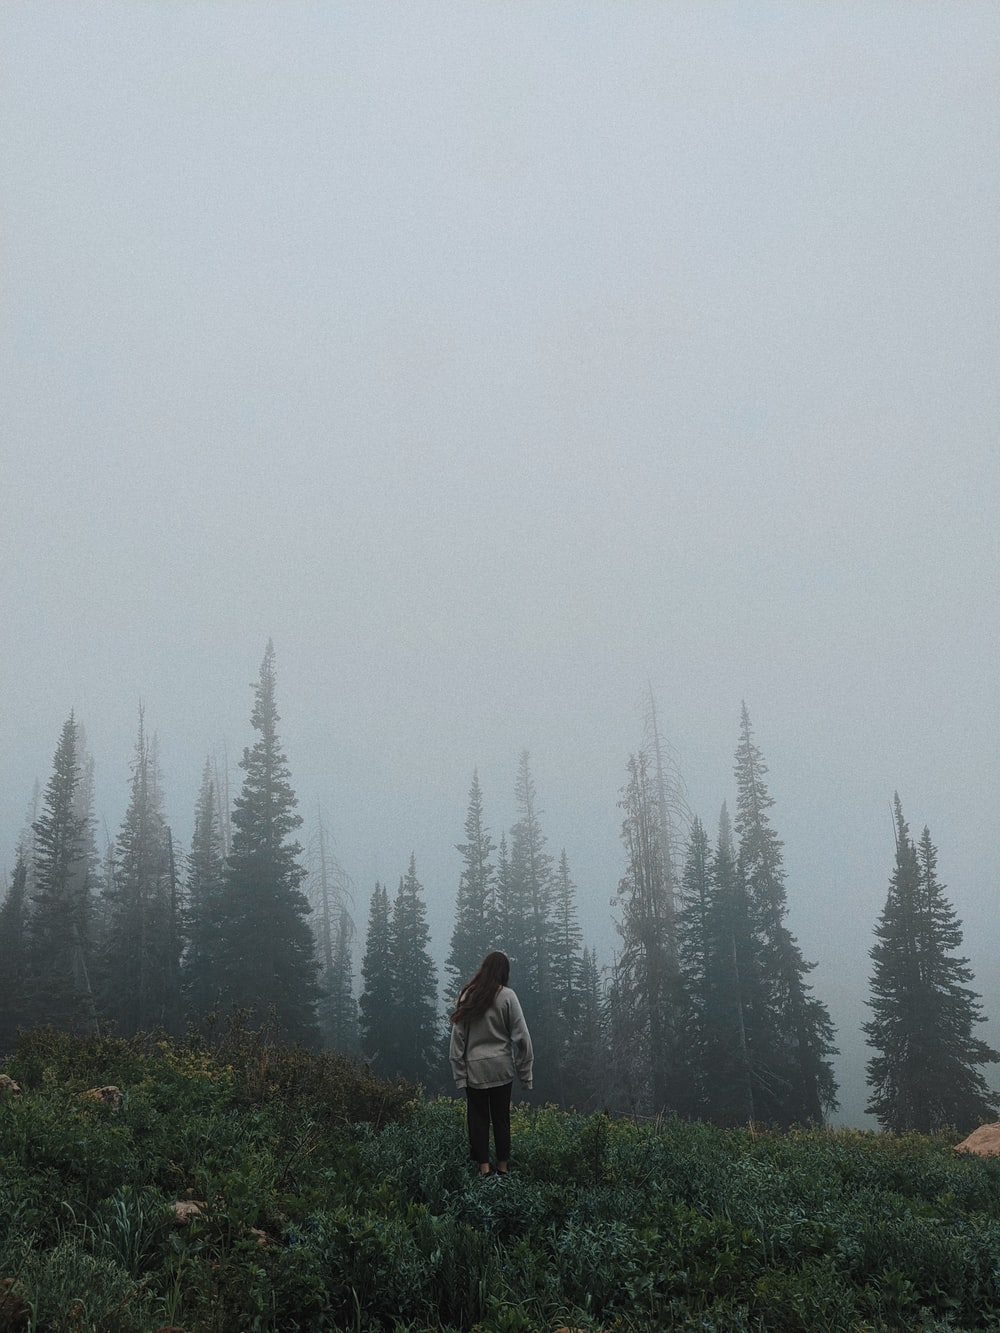 person in black jacket standing on green grass field near green pine trees during foggy weather